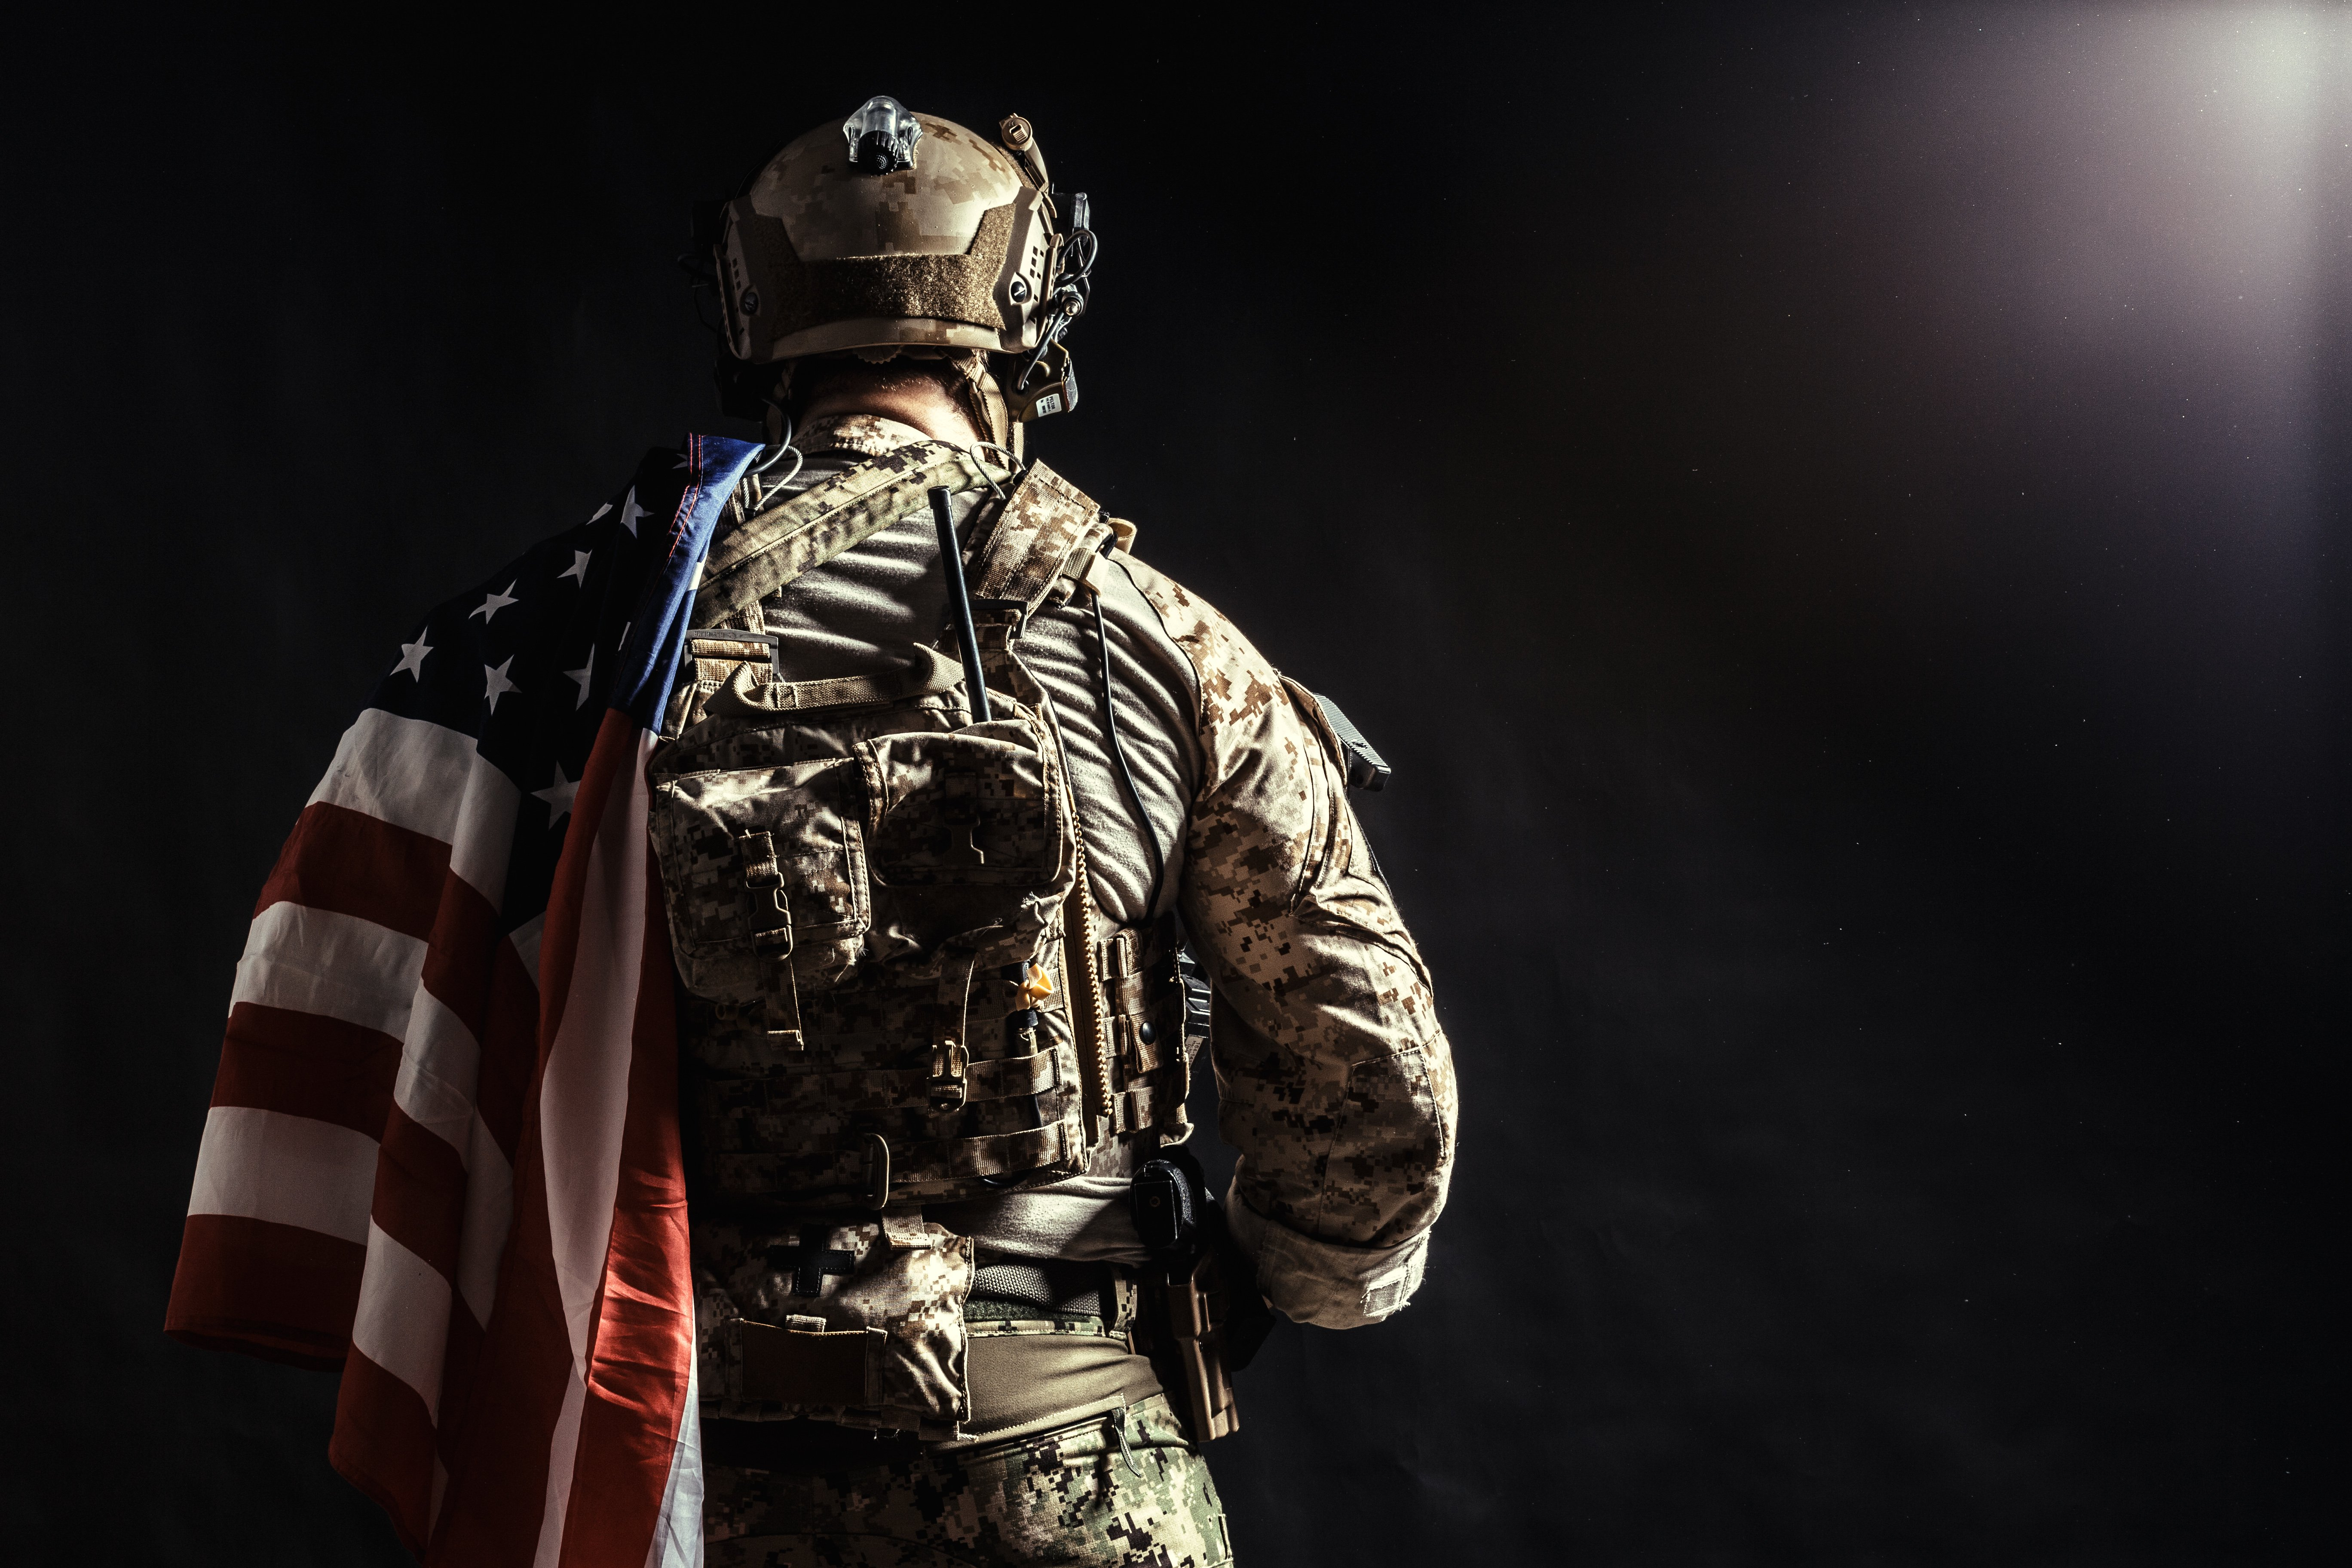 A soldier with the United States of America (U.S.A.) flag on his shoulder. │Source: Shutterstock